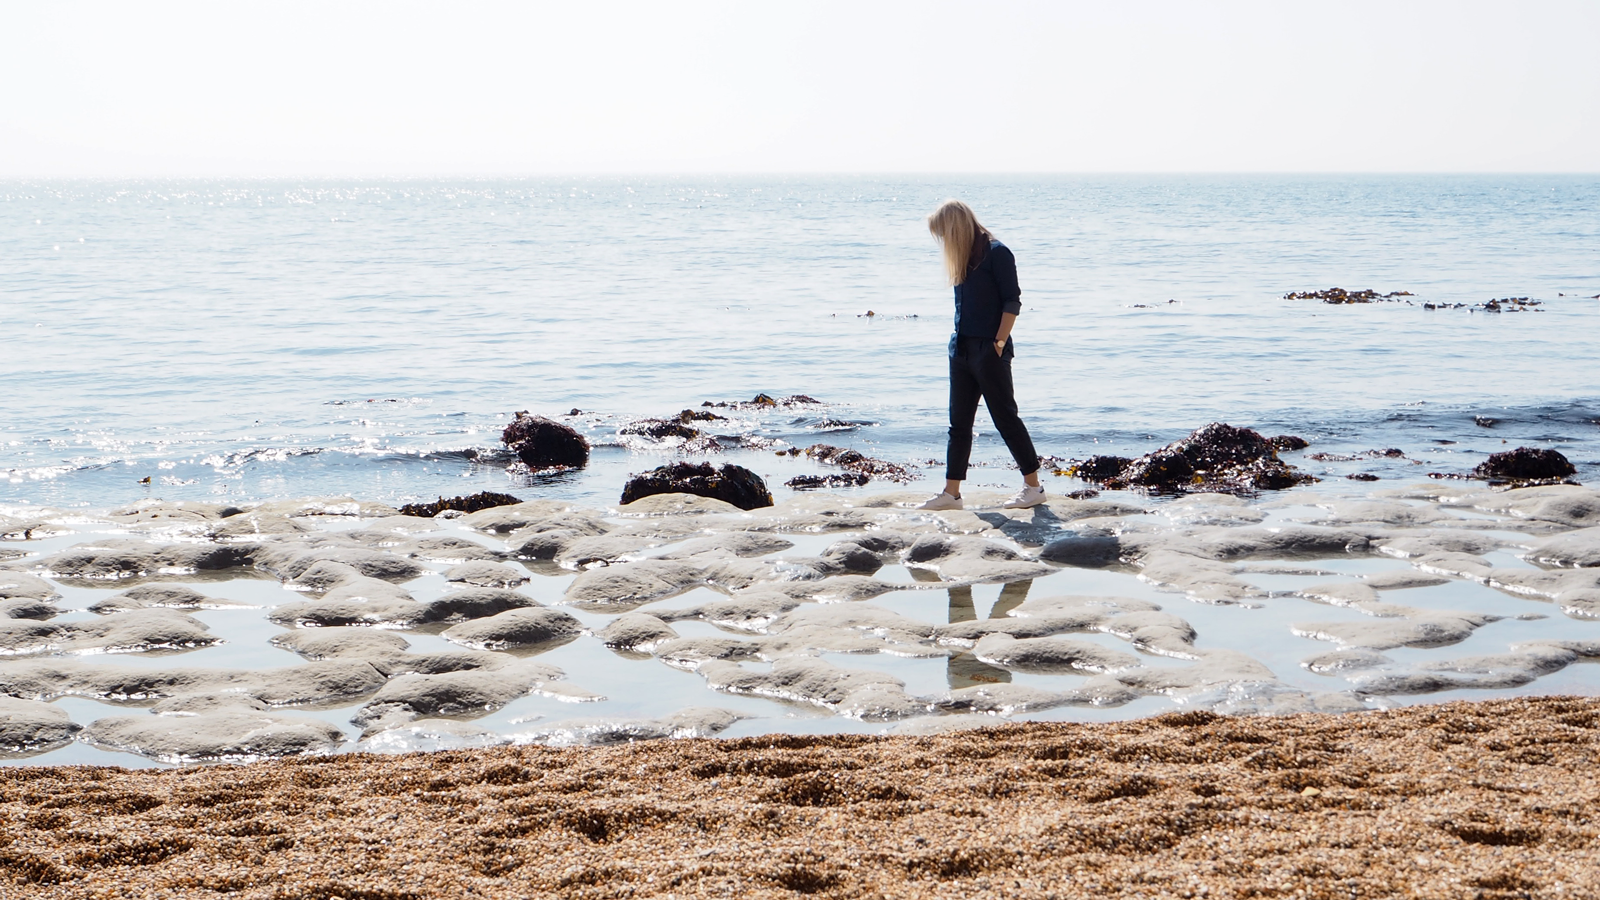 StyleAndMinimalism | Personal Style | A Day At The Beach | Wearing Denim Shirt, Leather Trousers + Stan Smith trainers